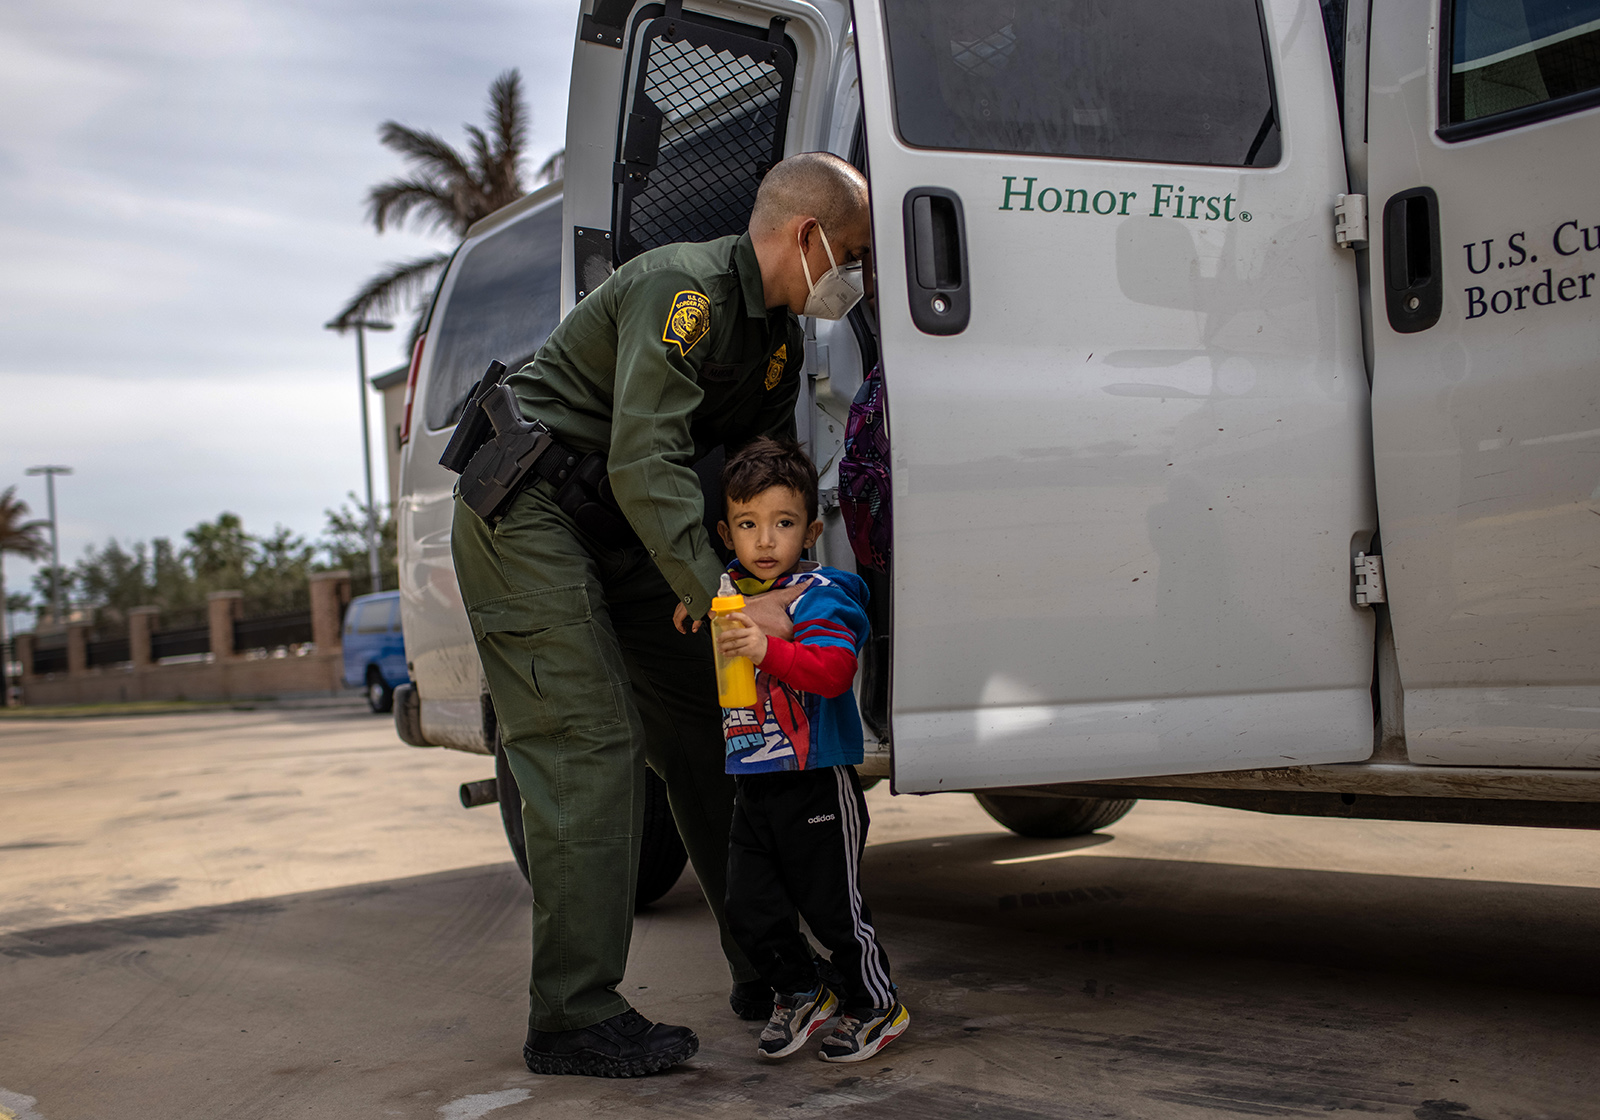 A U.S. Border Patrol agent delivers a young asylum seeker and his family to a bus station on February 26, in Brownsville, Texas.